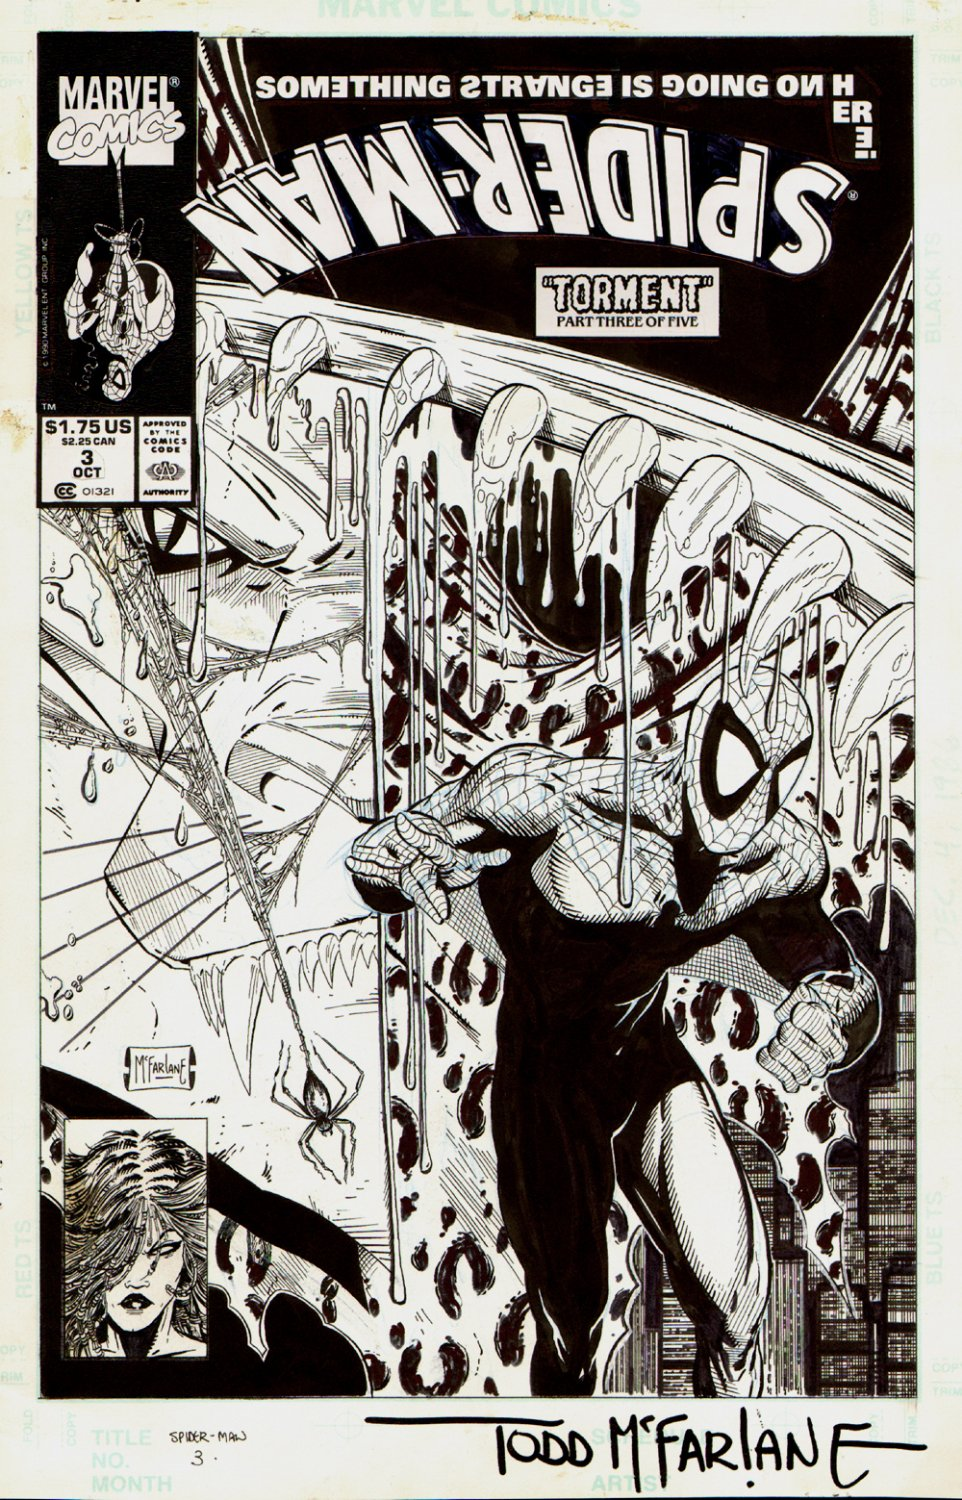 Spider-Man #3 Cover (1990)  SOLD SOLD SOLD!